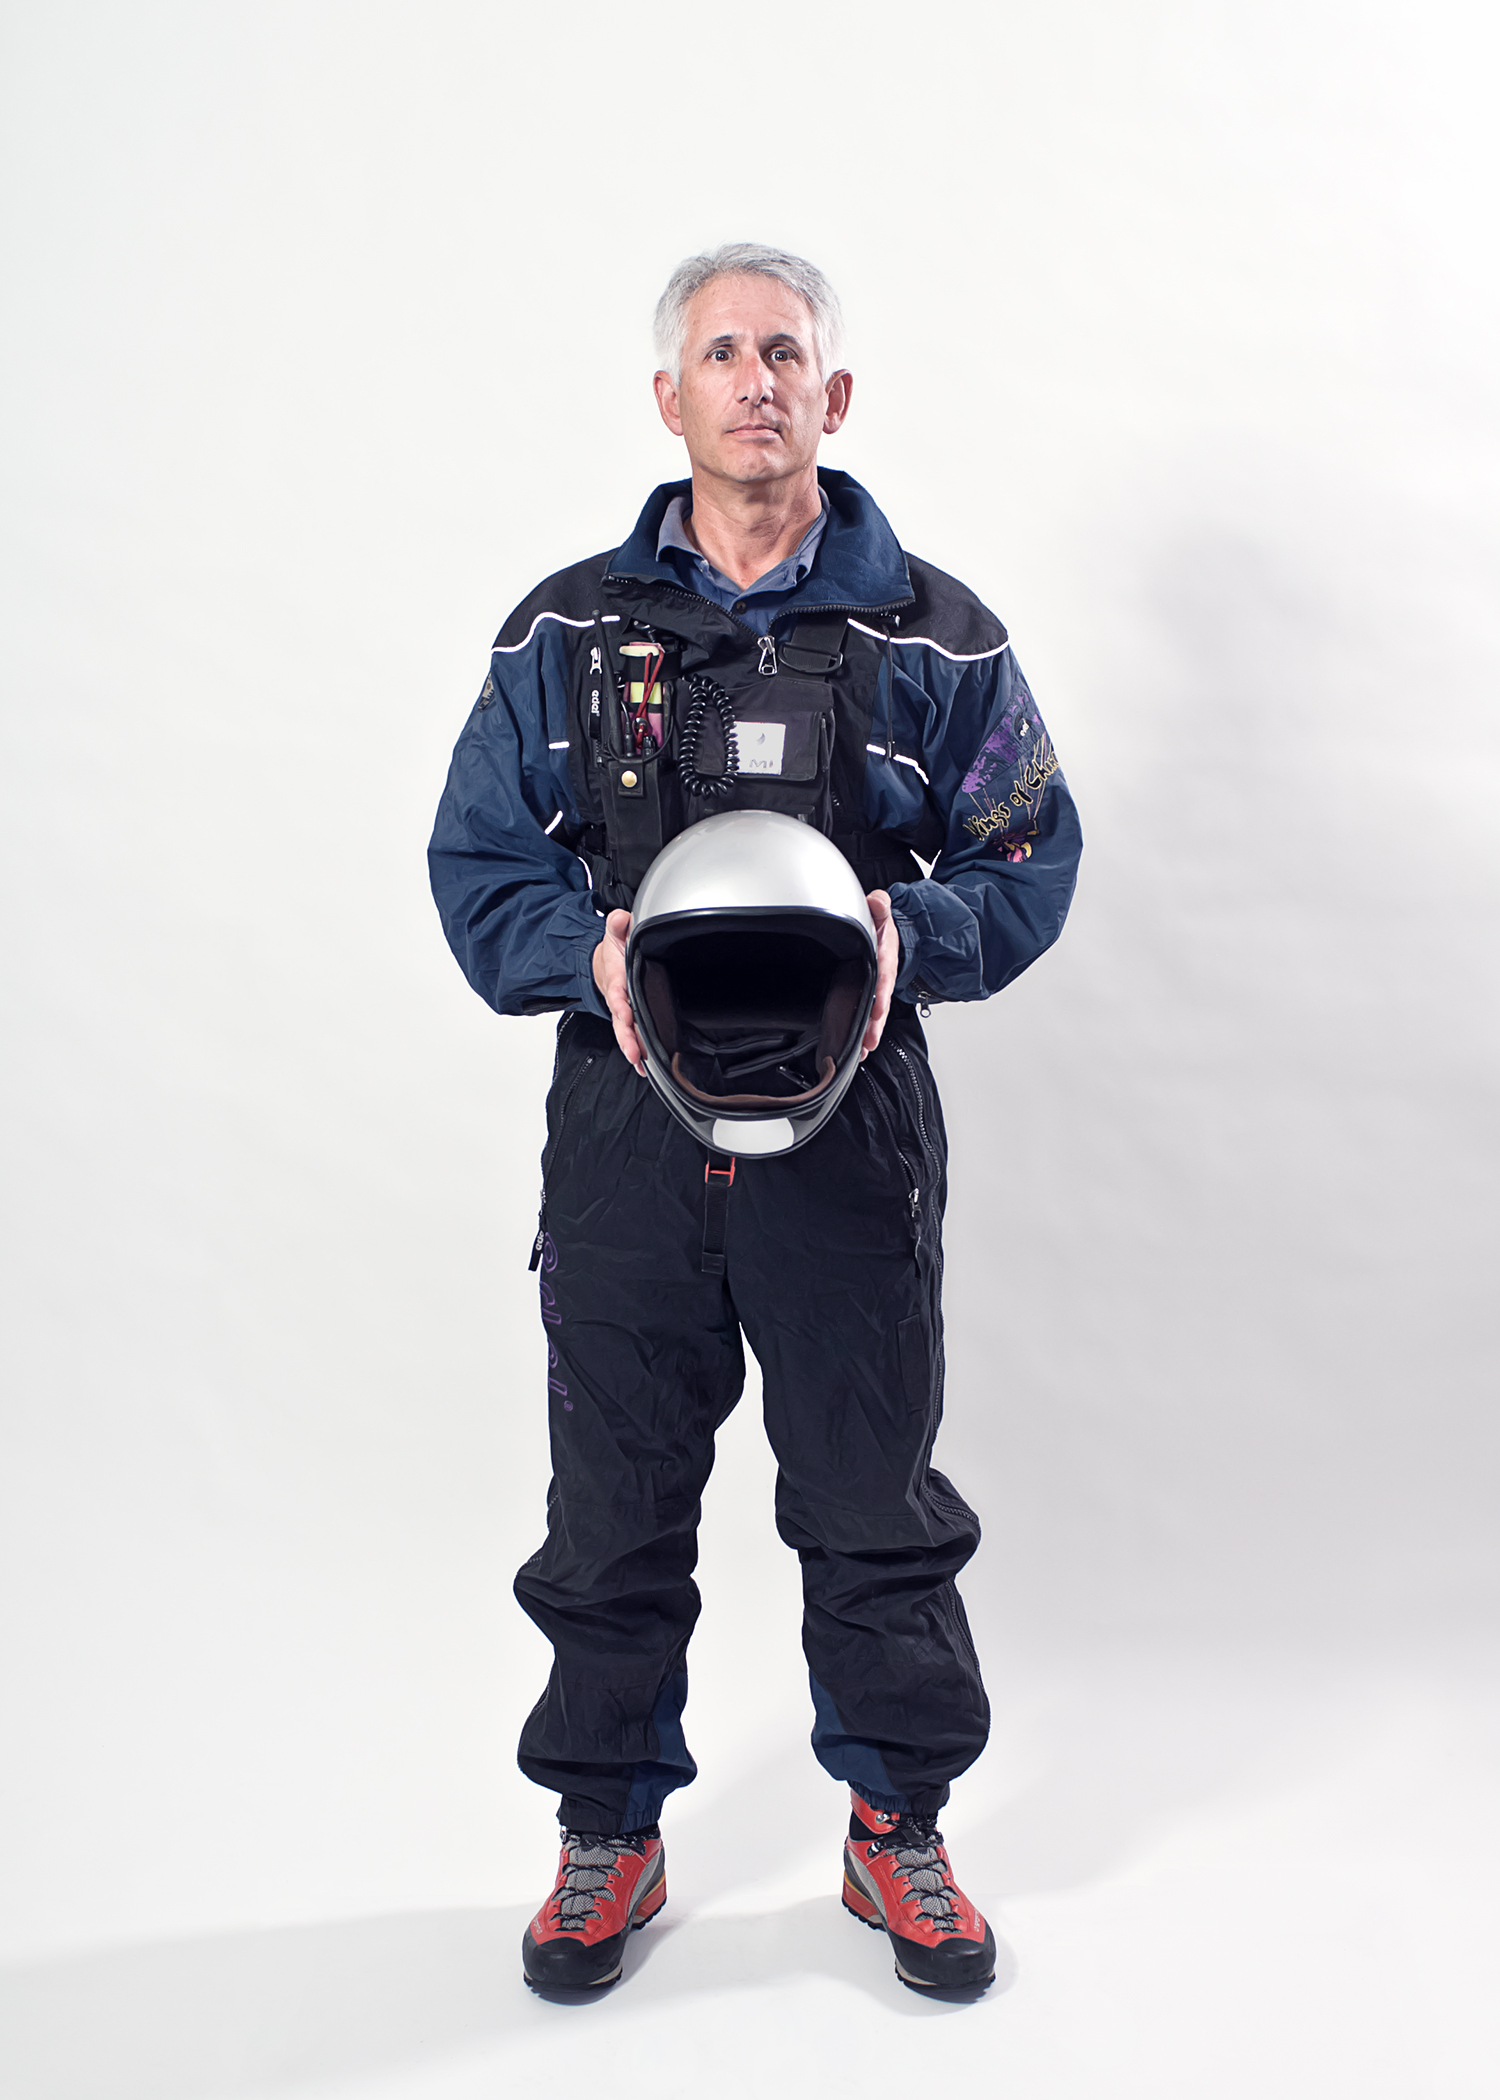 Tim  Paraglider Pilot for the What I Wear To Work portrait series.